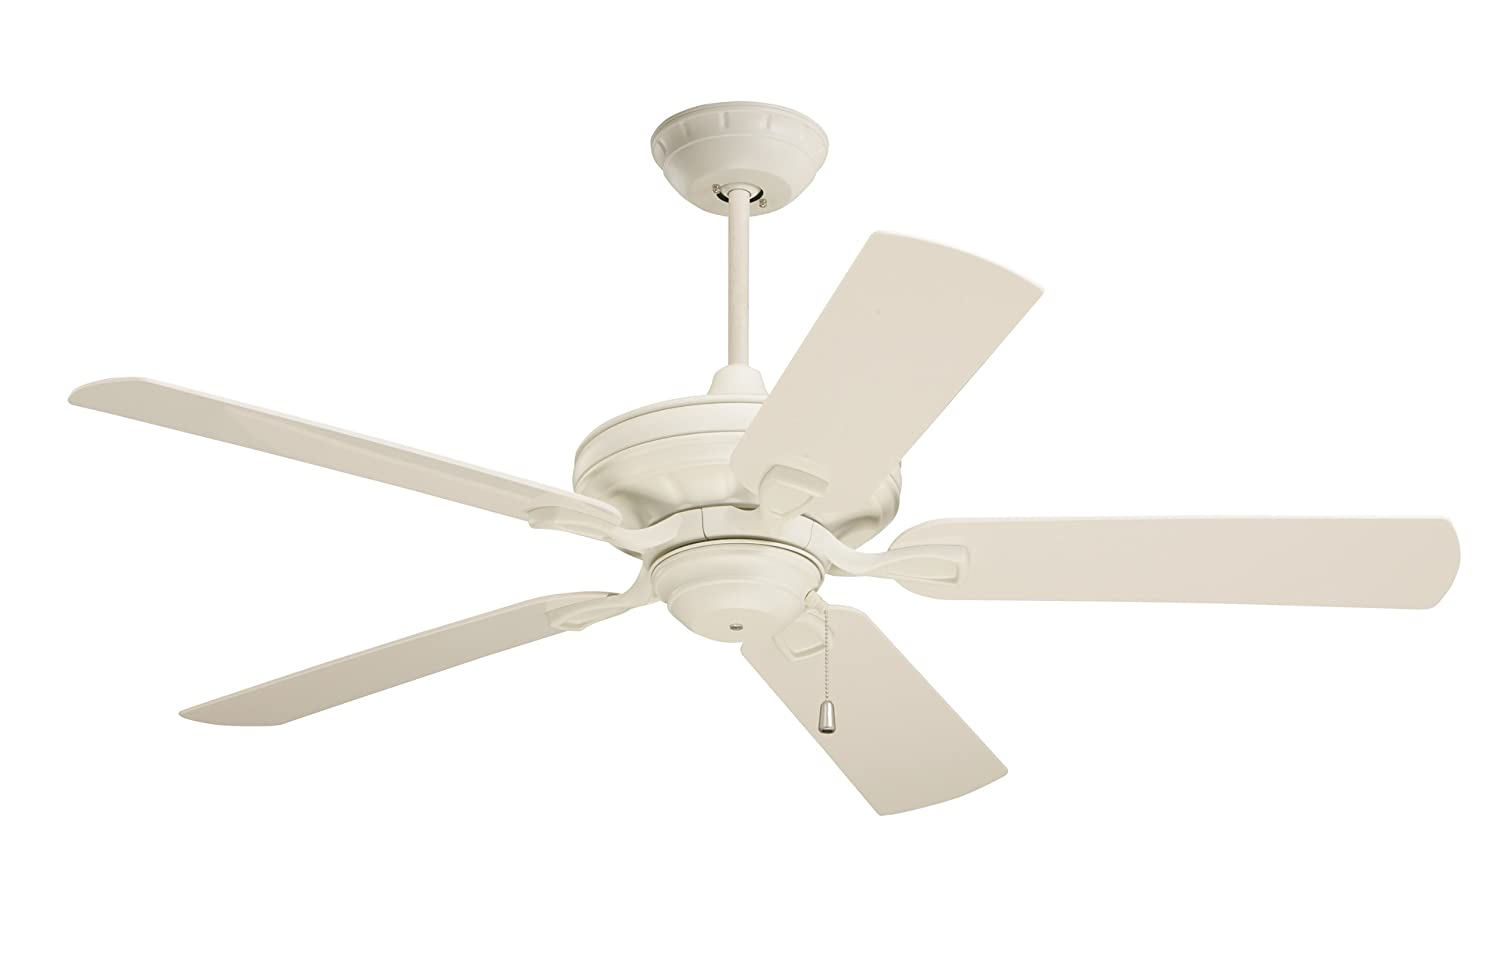 Emerson ceiling fans cf552aw veranda indoor outdoor ceiling fan 52 emerson ceiling fans cf552aw veranda indoor outdoor ceiling fan 52 inch blade span summer white ceiling fan with all weather summer white blades close aloadofball Gallery